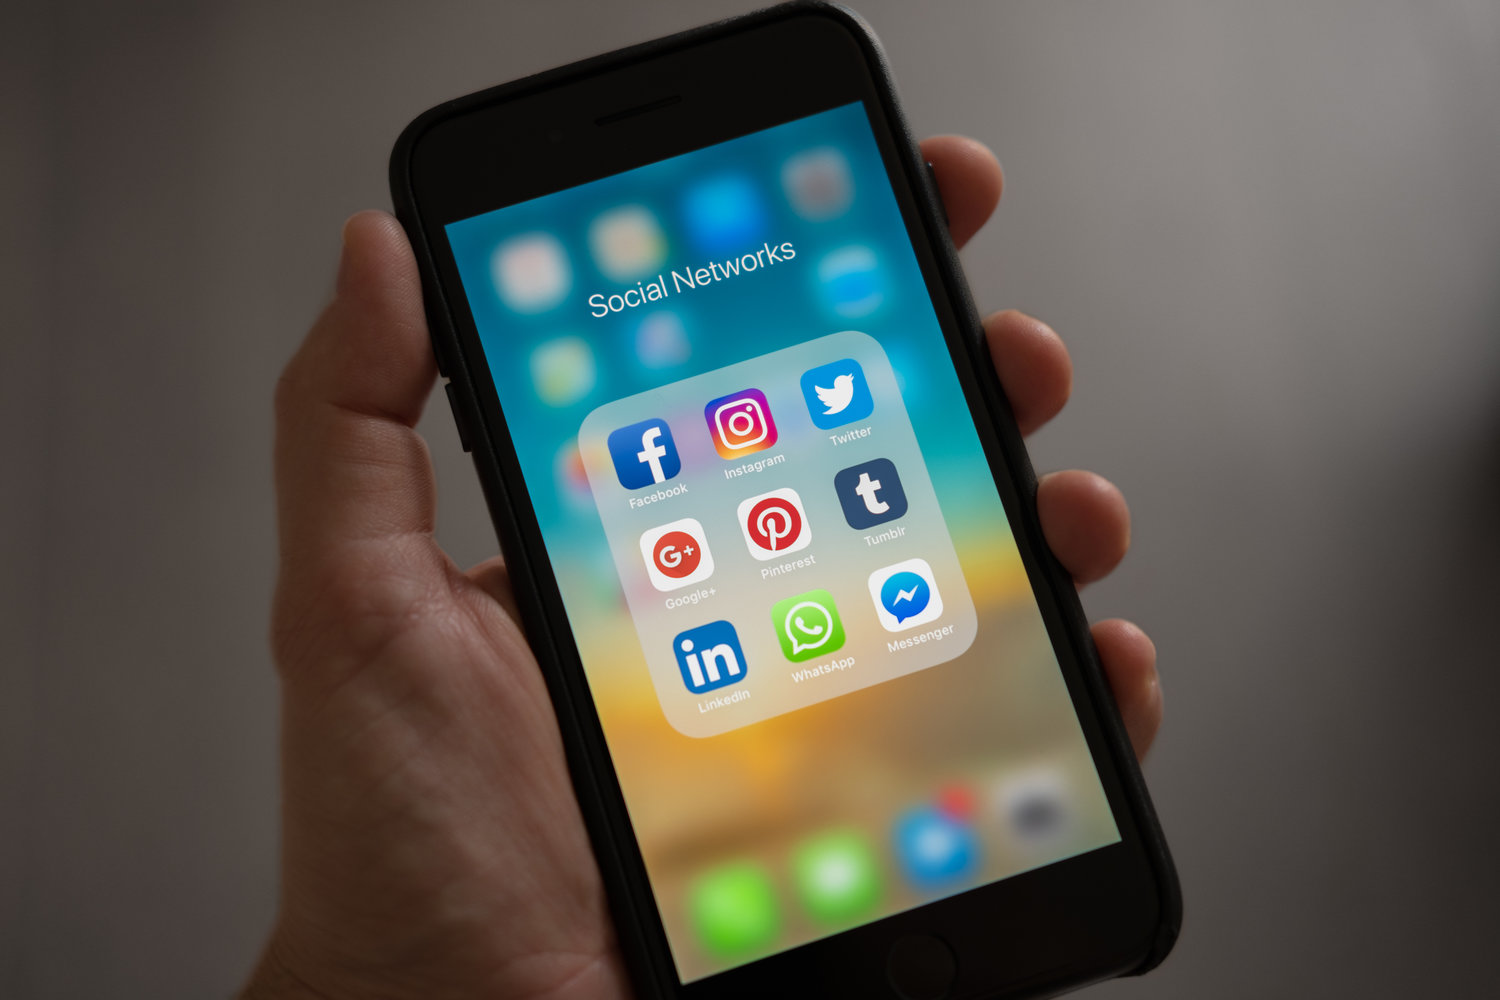 social media applications on a mobile device